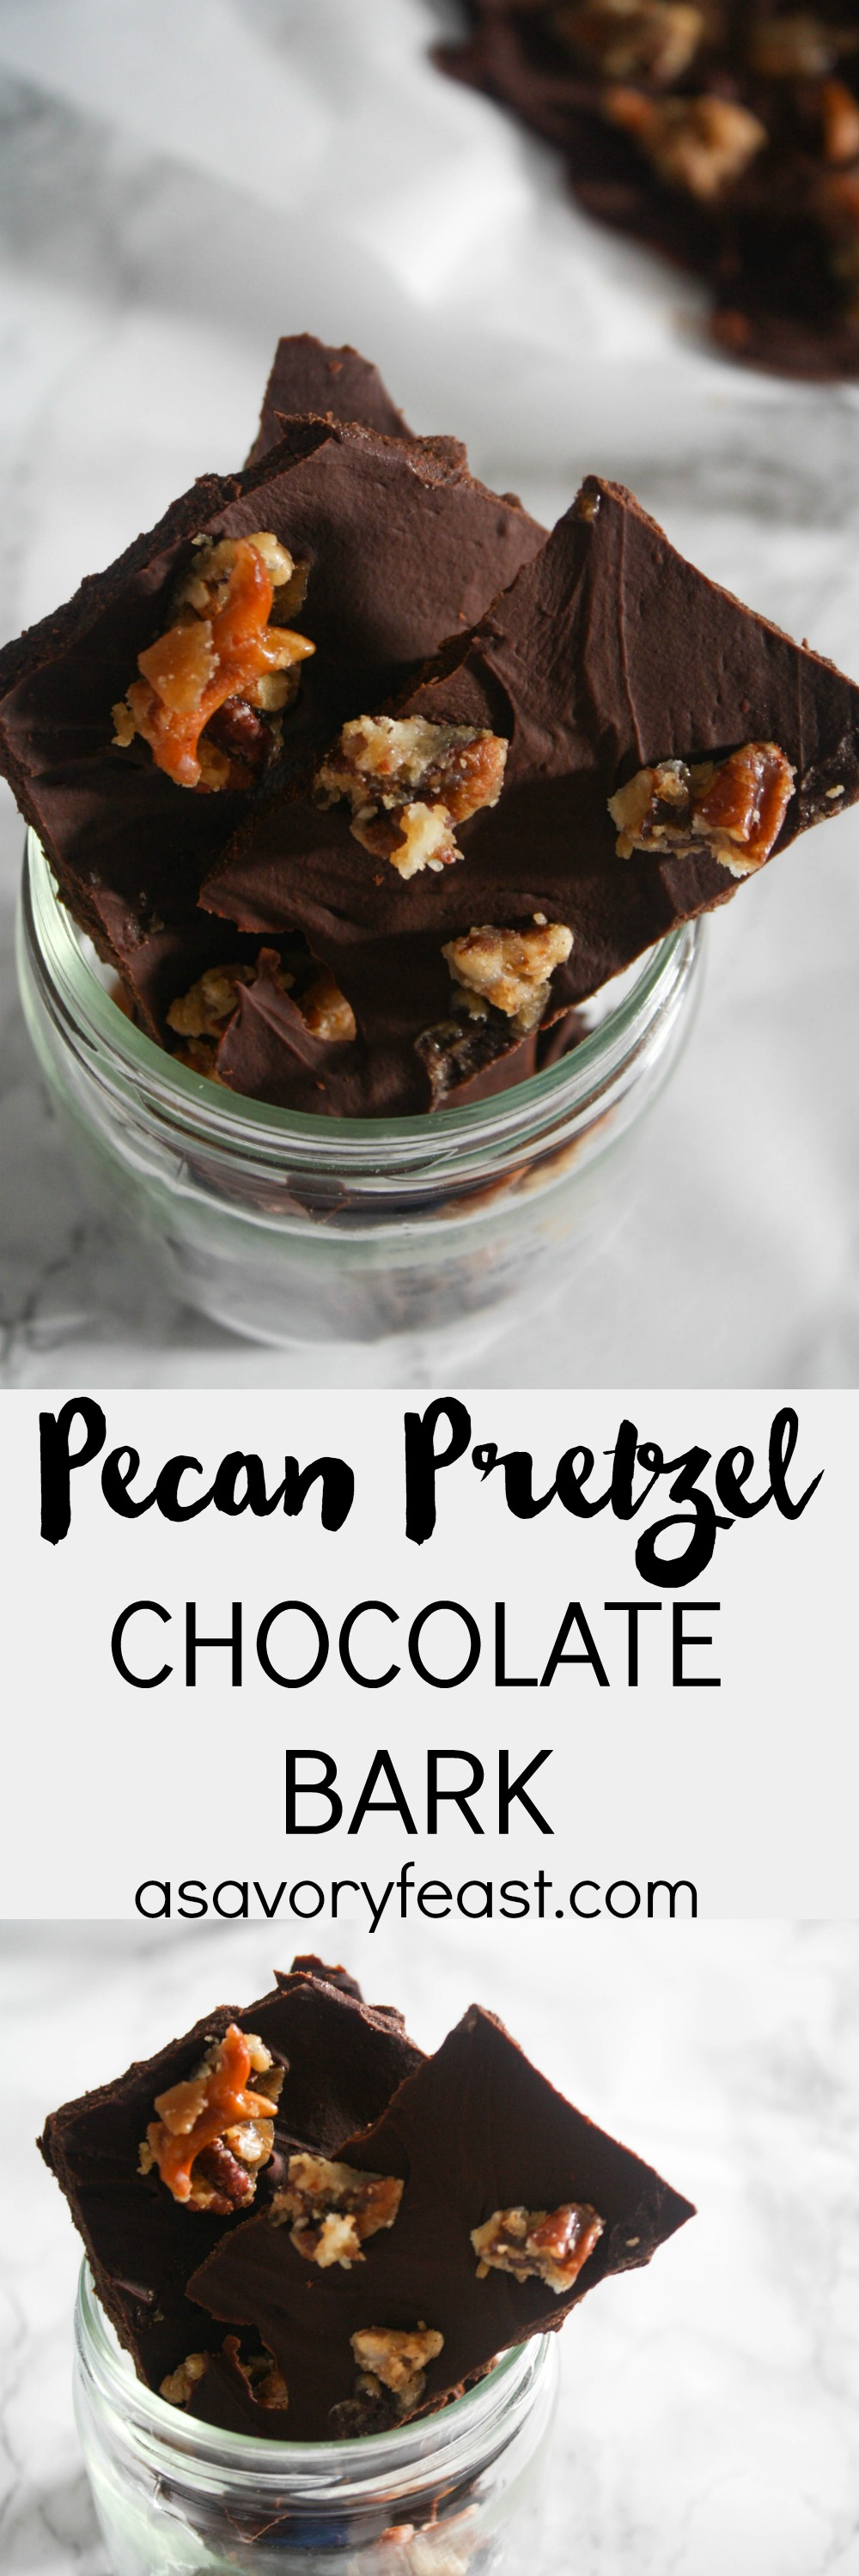 Kick off your holiday baking with an easy chocolate bark! This Pecan Pretzel Chocolate Bark is a wonderful combination of salty and sweet. Perfect for gifting or holiday parties!